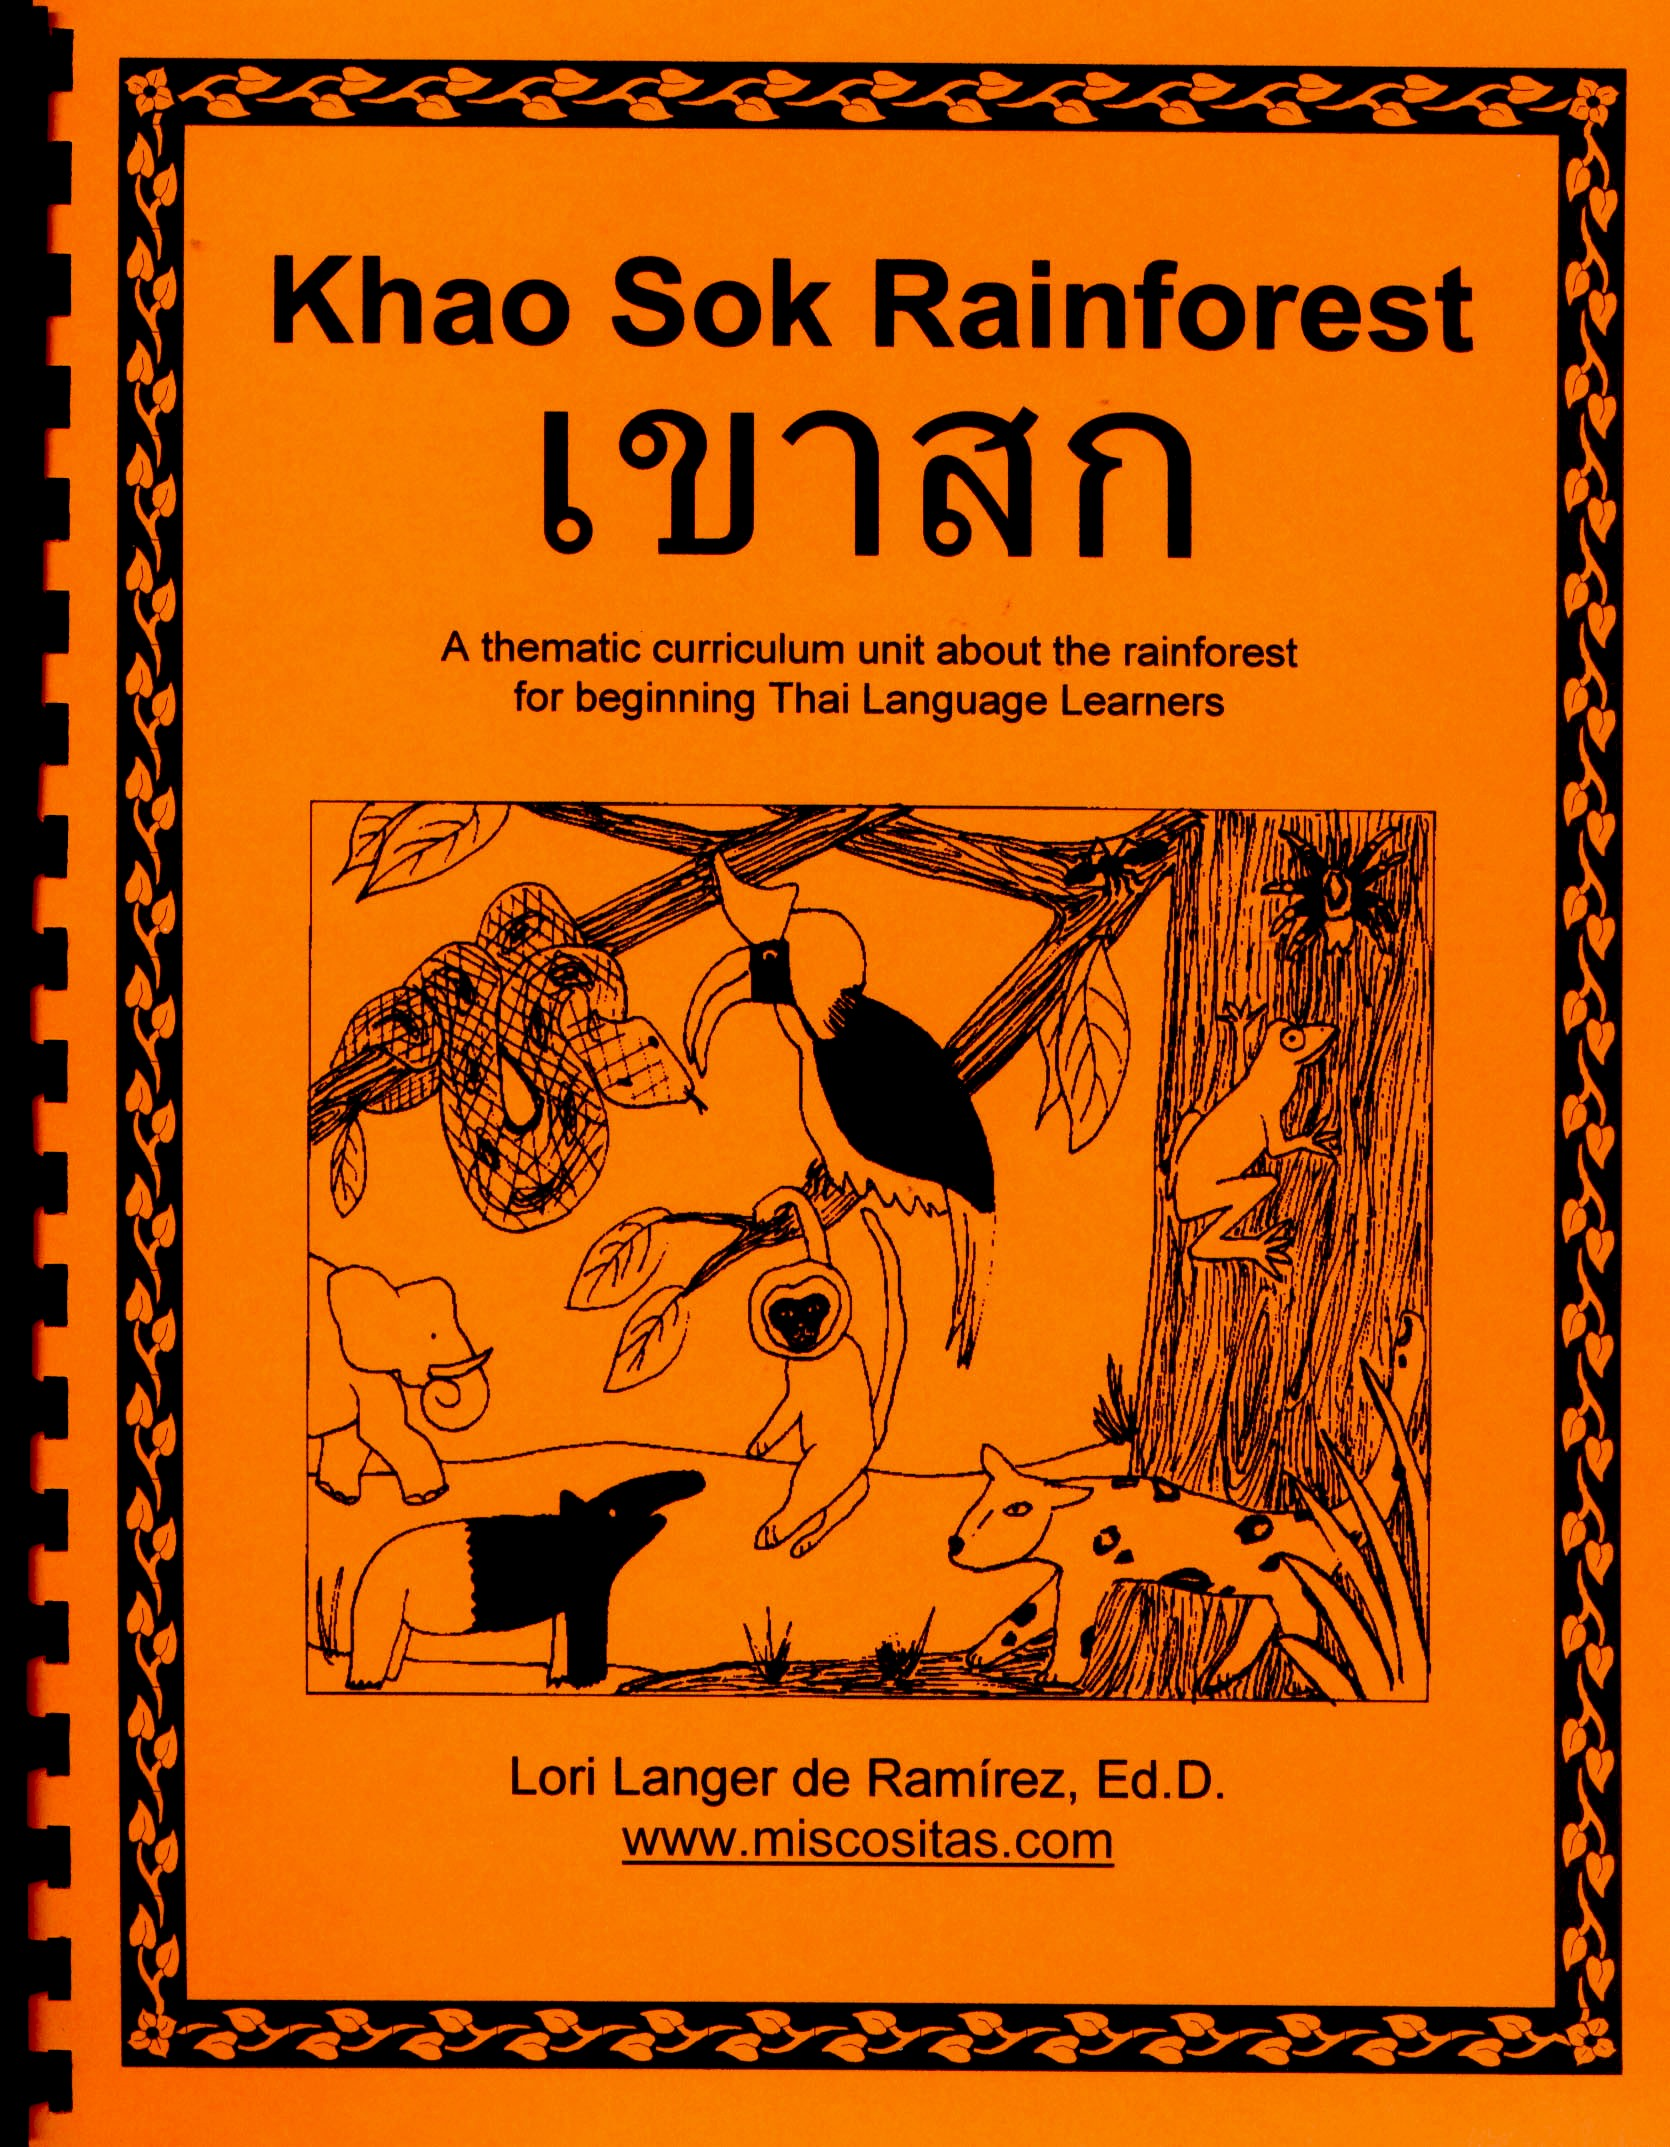 The Khao Sok Rainforest